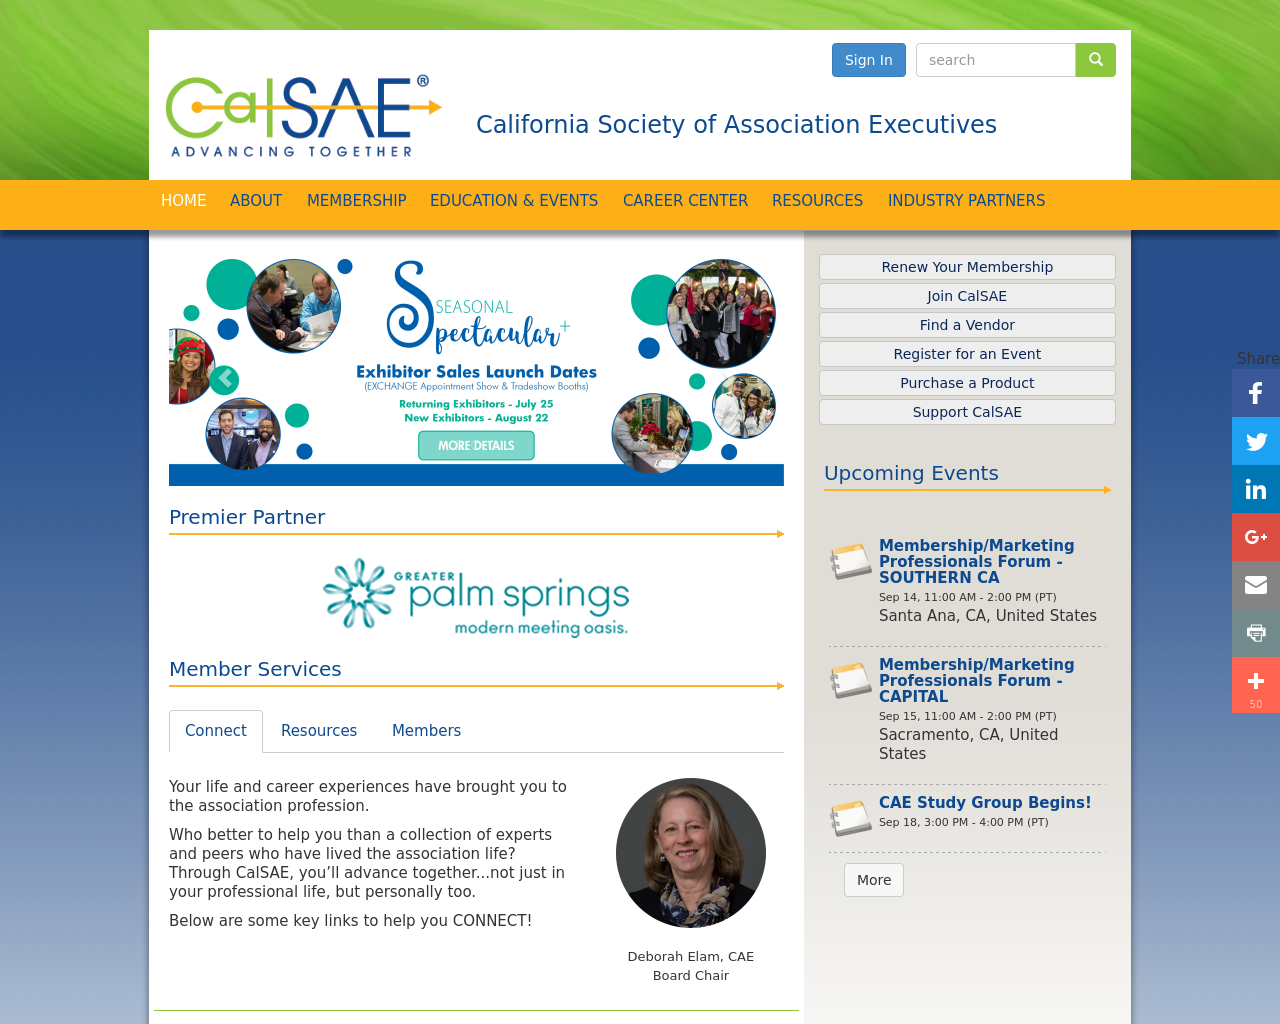 California-Society-of-Association-Executives-Advertising-Reviews-Pricing